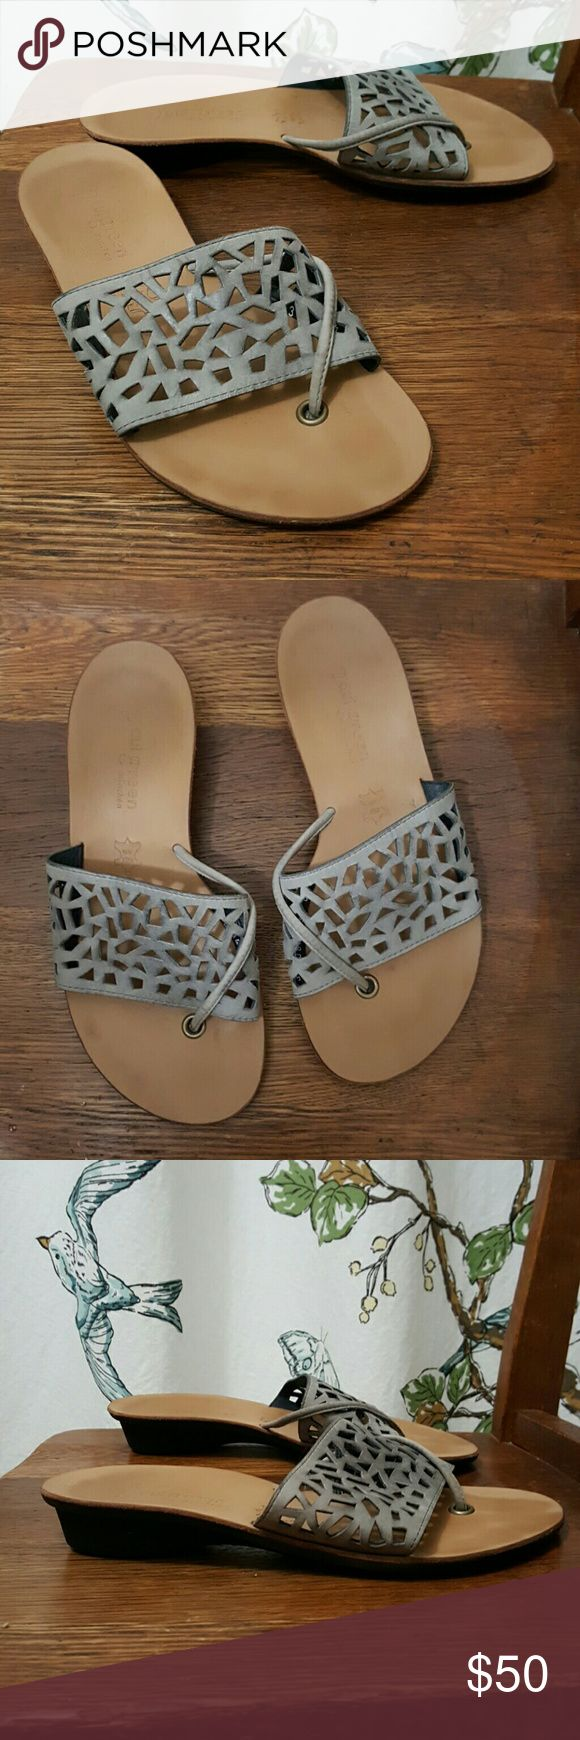 Paul green hillary sandals laser cut Laser cut leather slide thong sandals. The color on these is taupe , in some lights it looks grey. They are in very good condition,  tiny bit of wear at bottom edge of heel. Looks like they were worn maybe once or twice. Paul Green Shoes Sandals